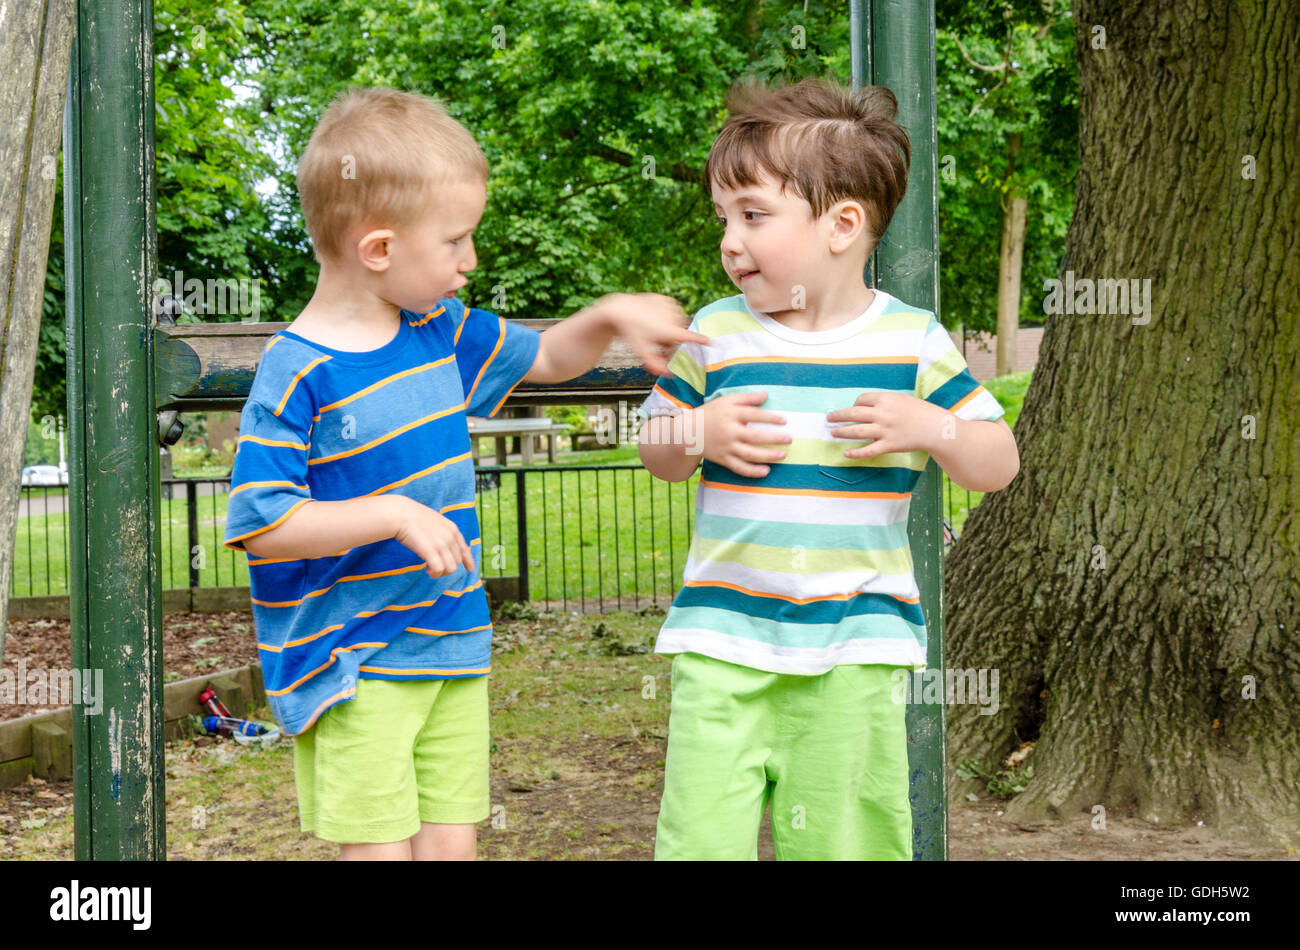 a-couple-of-young-boys-make-friends-in-t